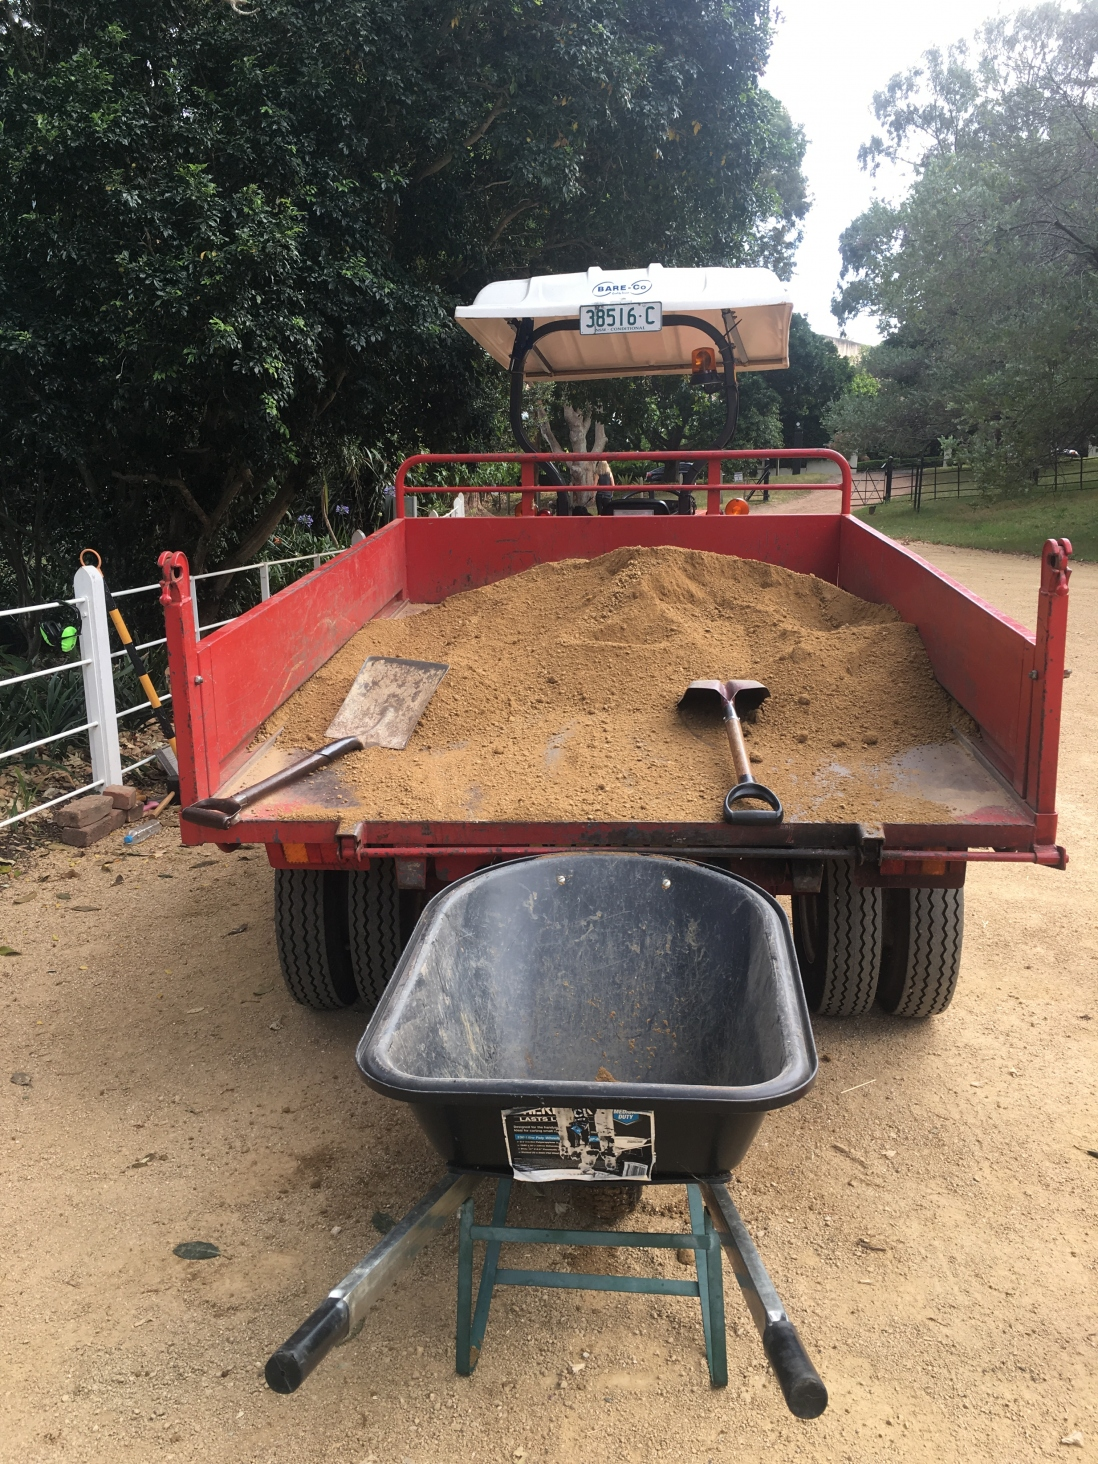 An empty wheelbarrow sits waiting to be filled with gravel from the tractor